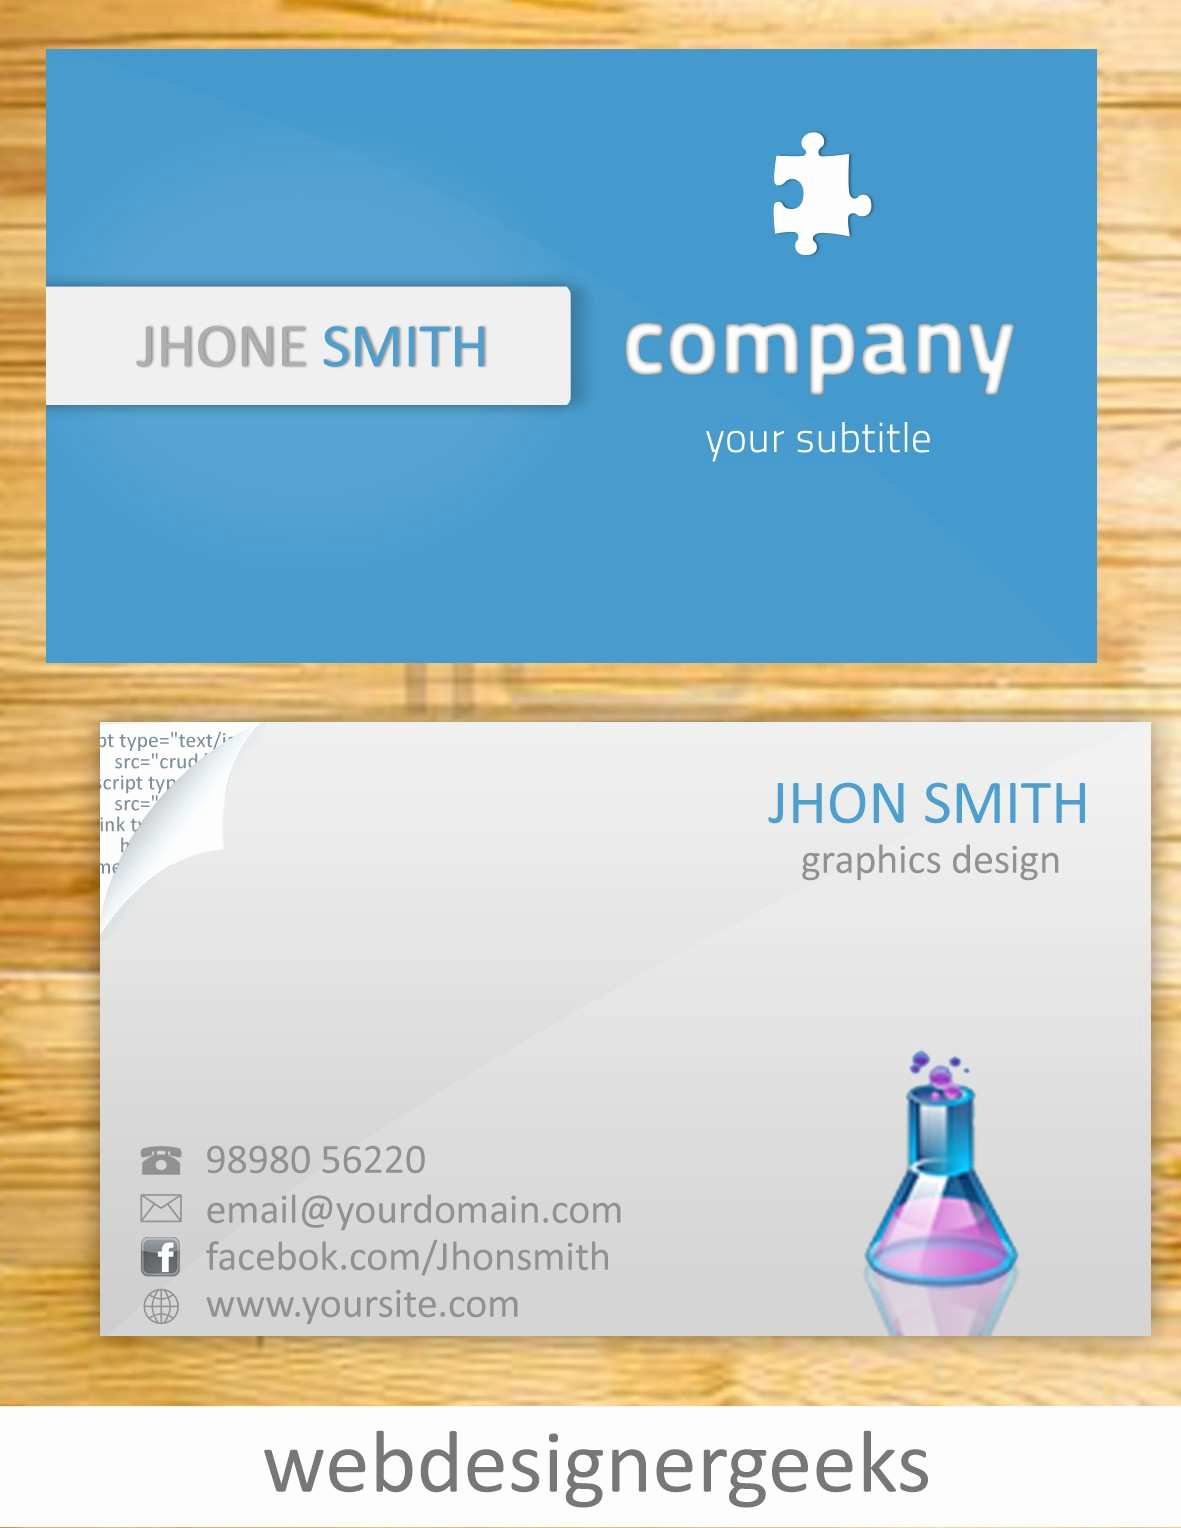 Business Card Template Illustrator Free Luxury Elegant Vistaprint Postcard Template Illustrator